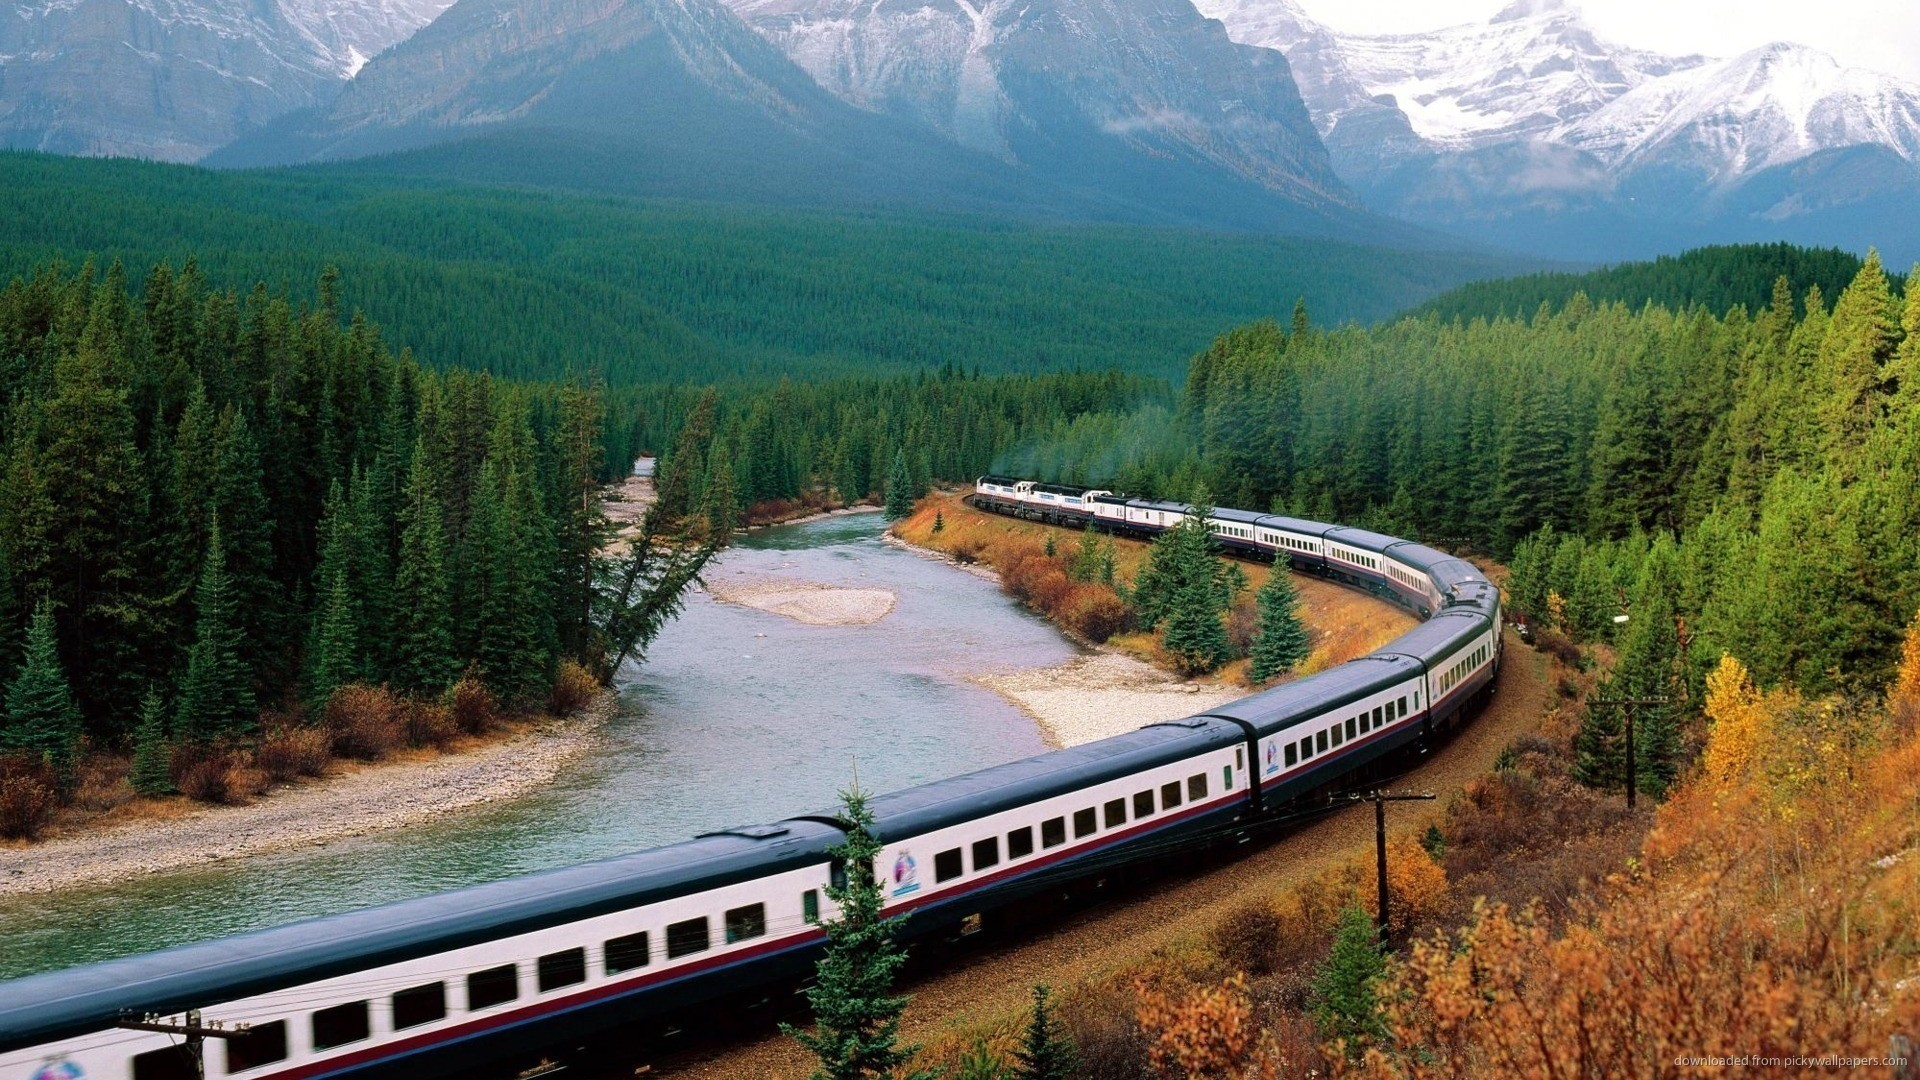 Beautiful landscape with a train picture